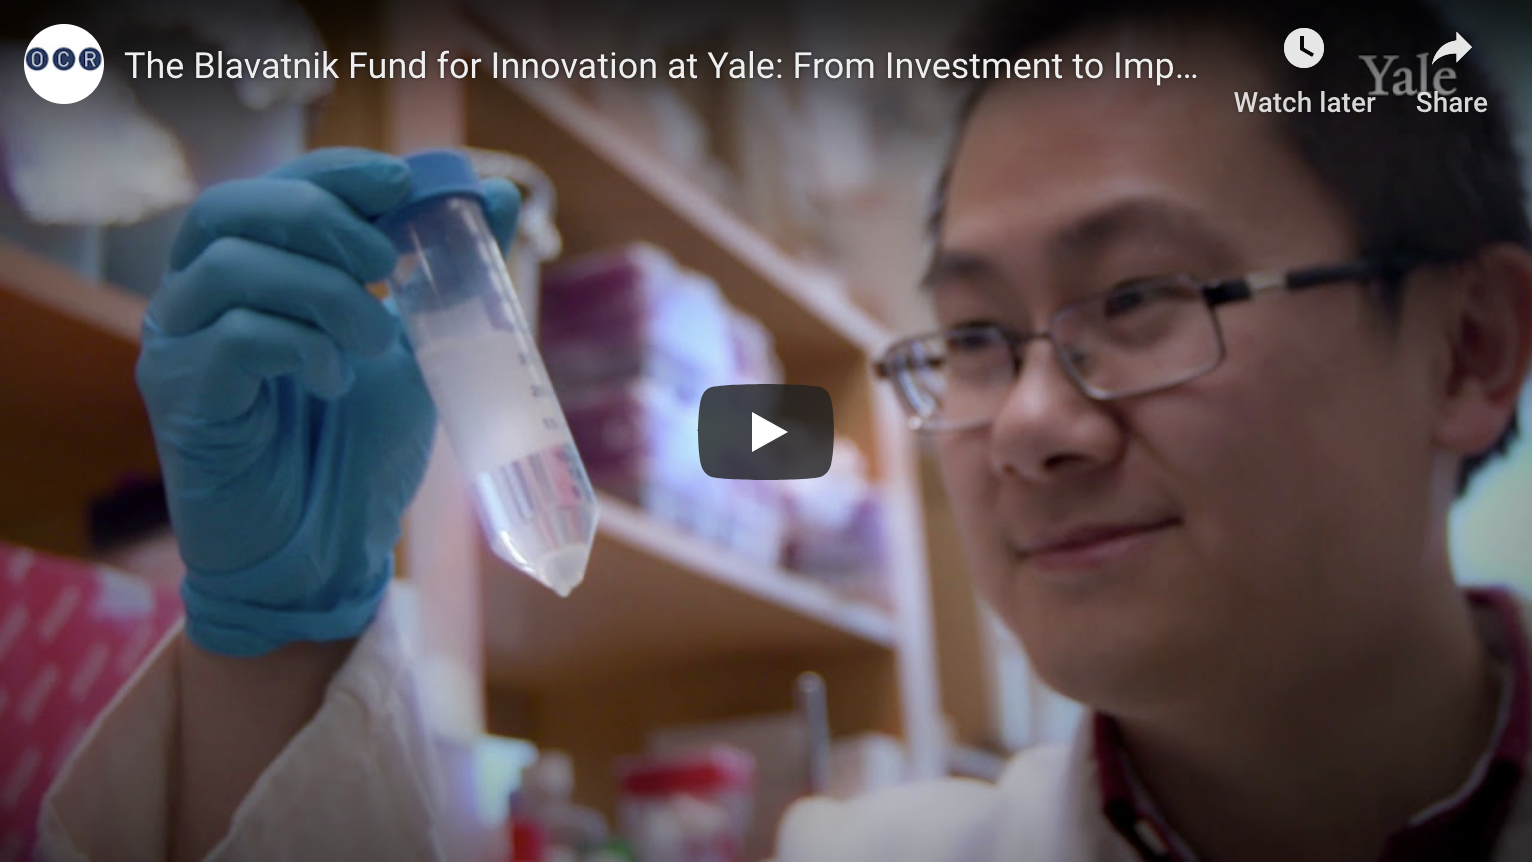 The Blavatnik Fund for Innovation at Yale: From Investment to Impact in 2019